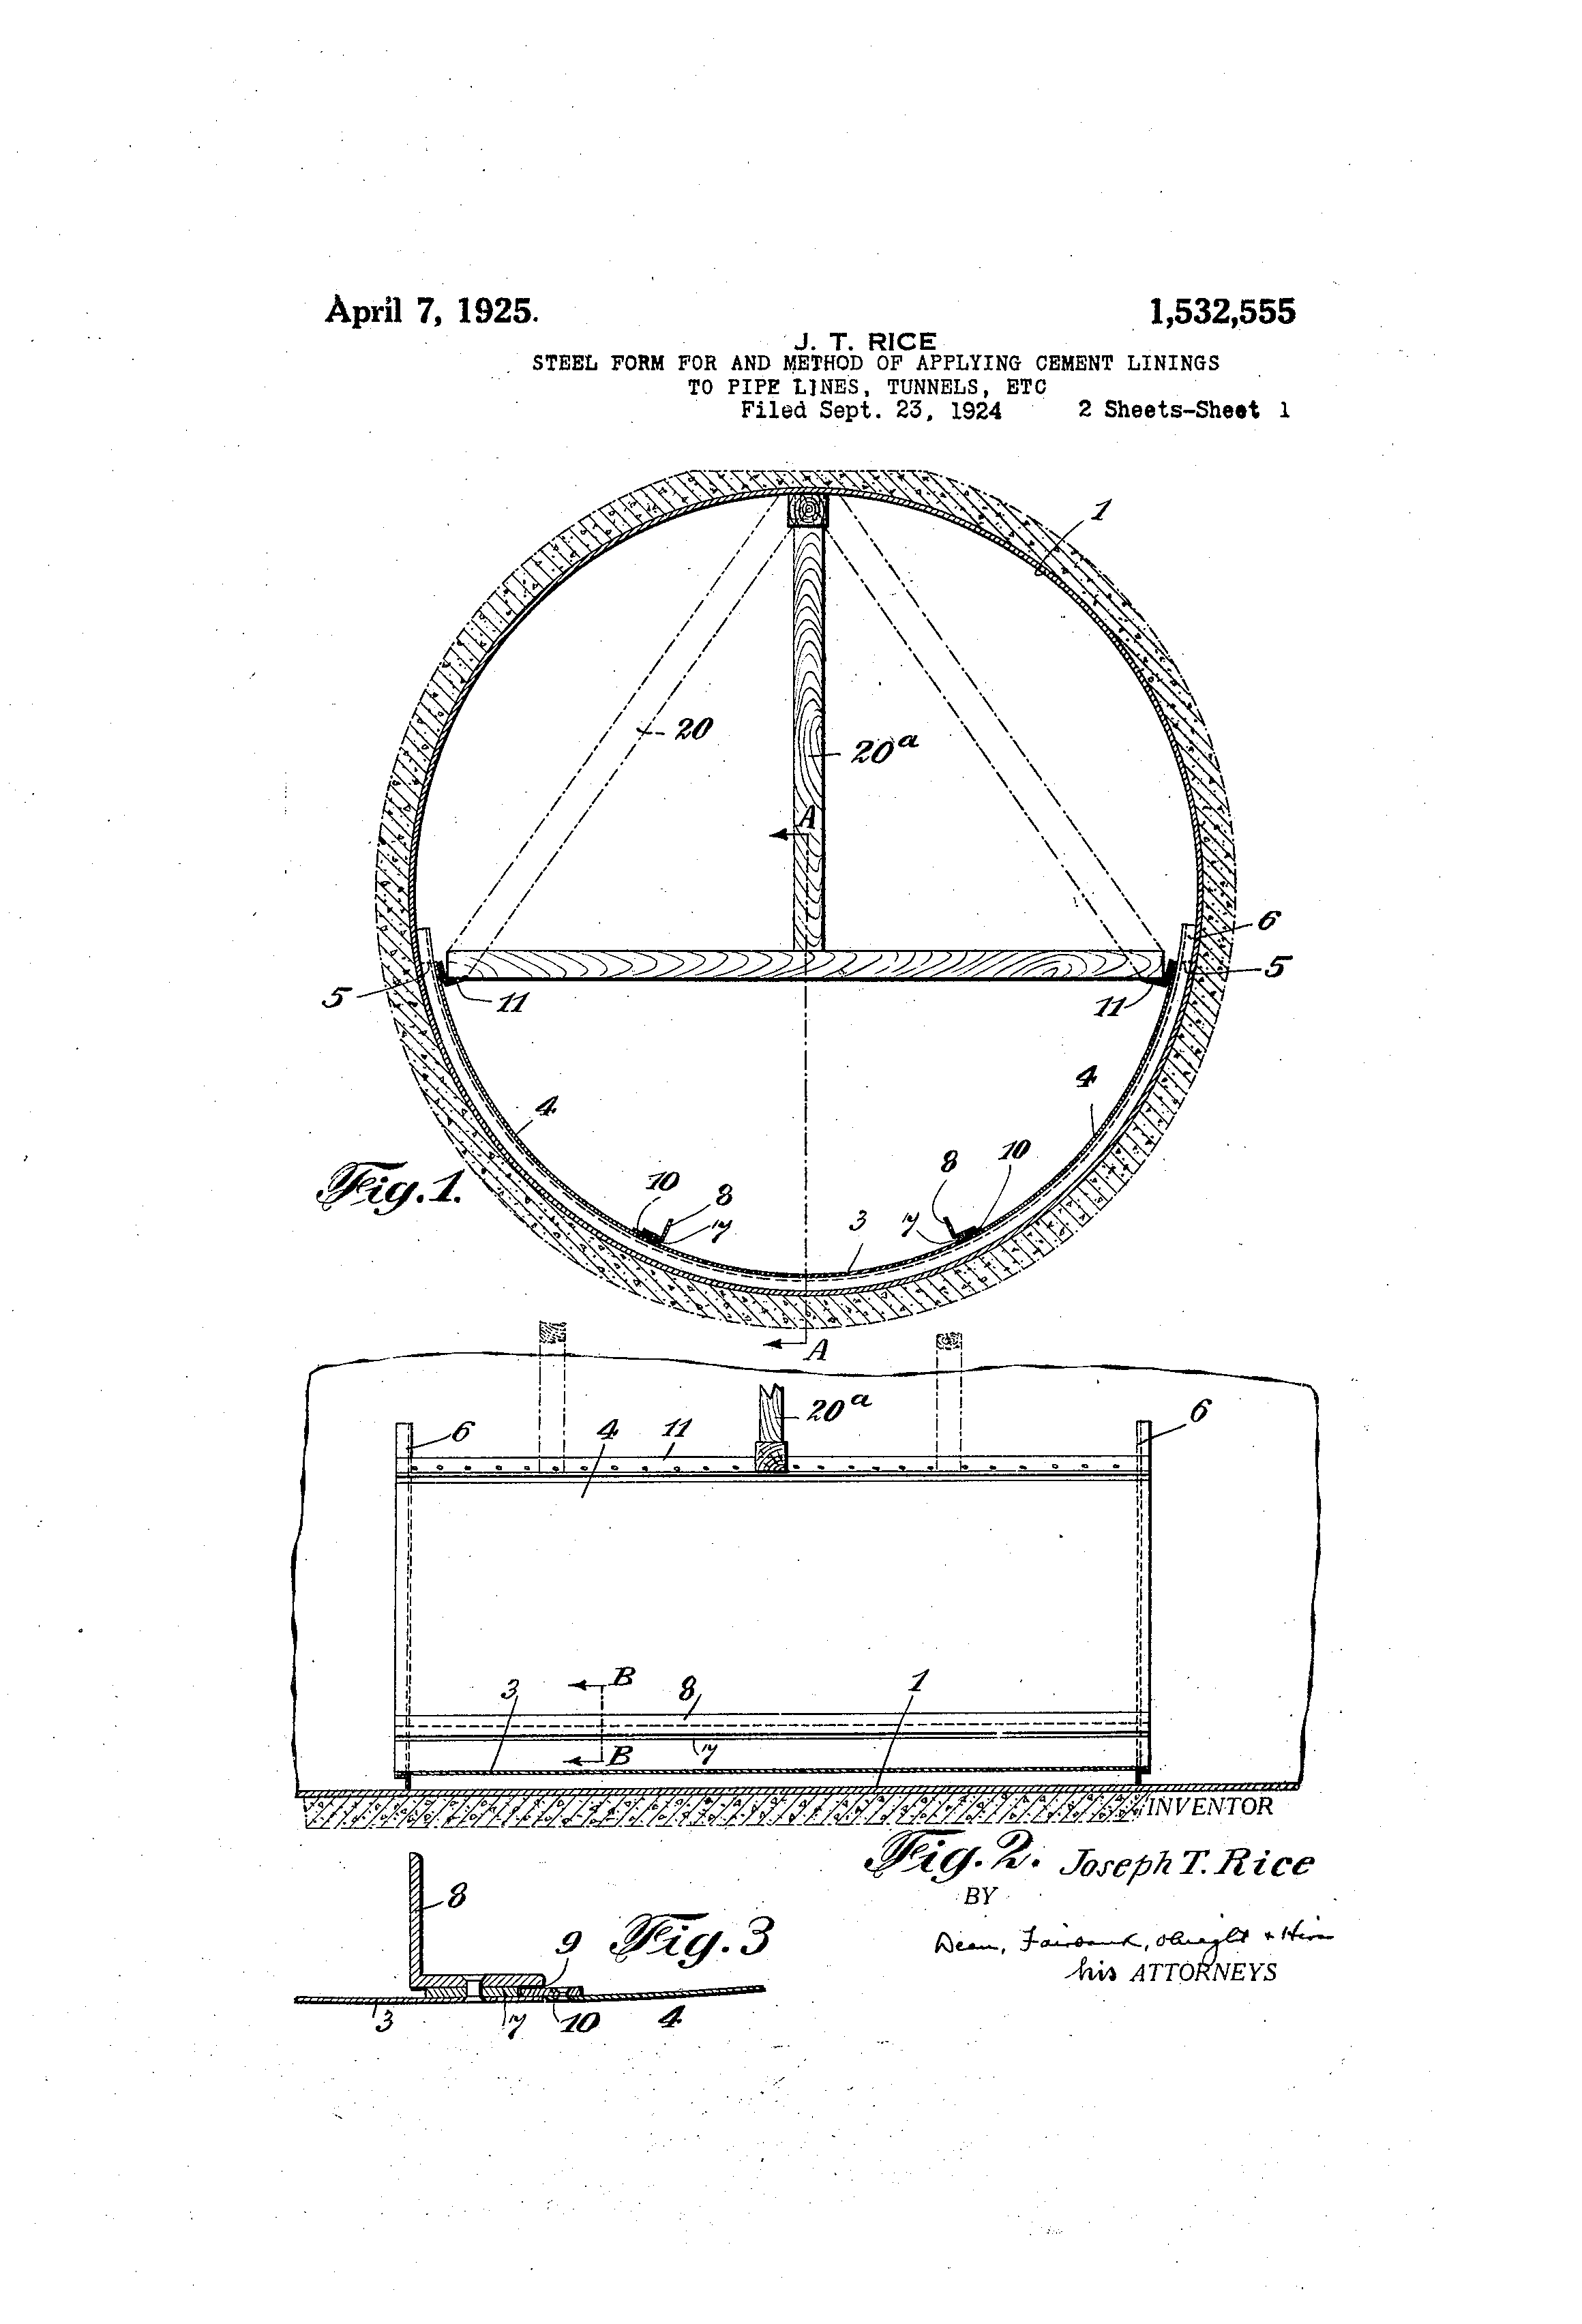 Patent US1532555 - Steel form for and method of applying cement